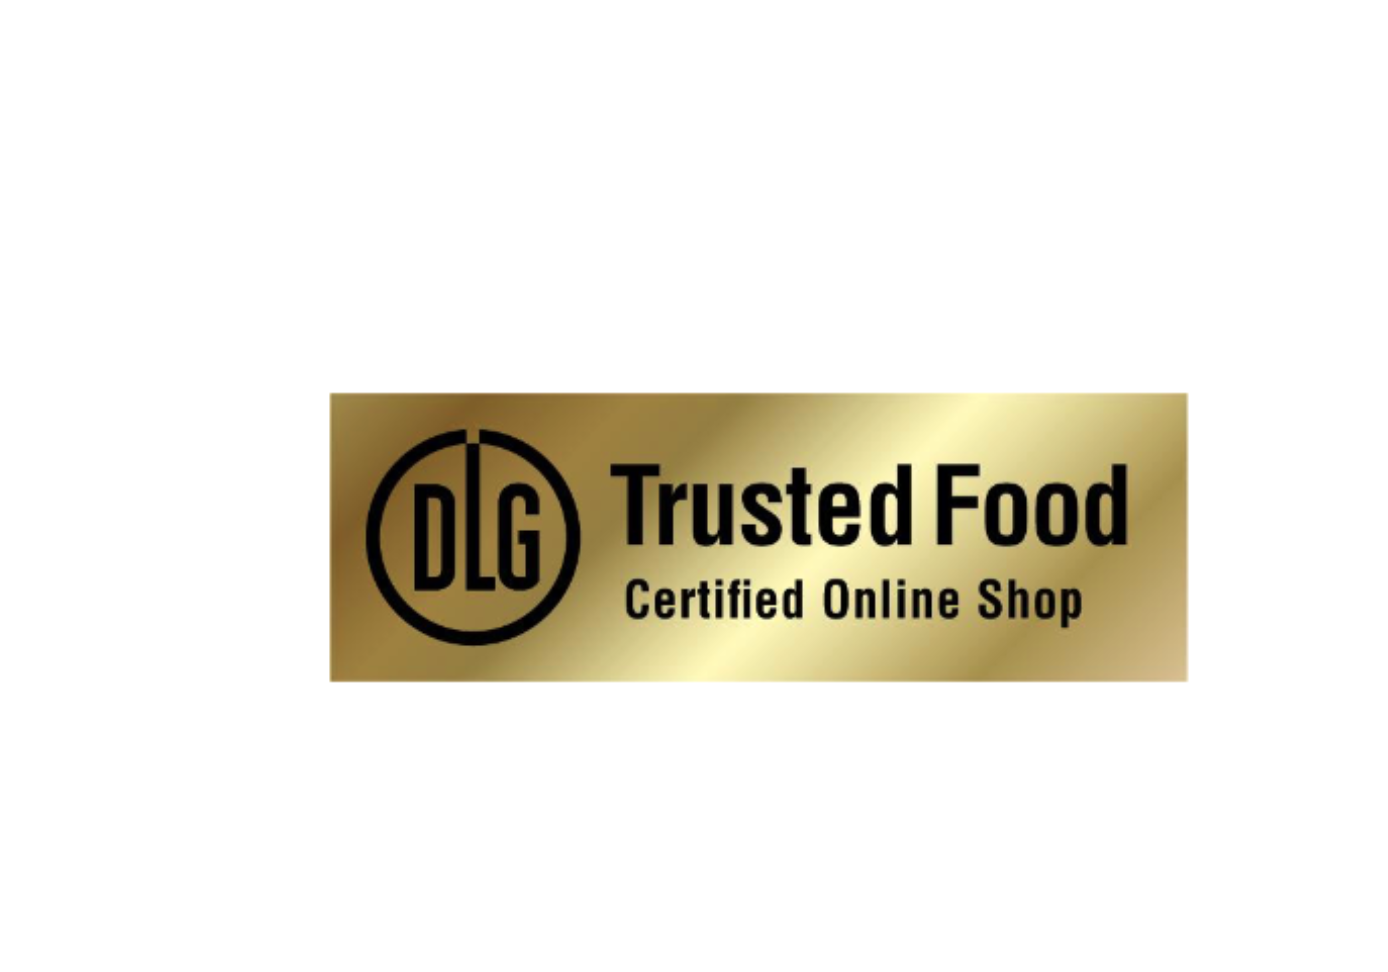 DLG Trusted Food